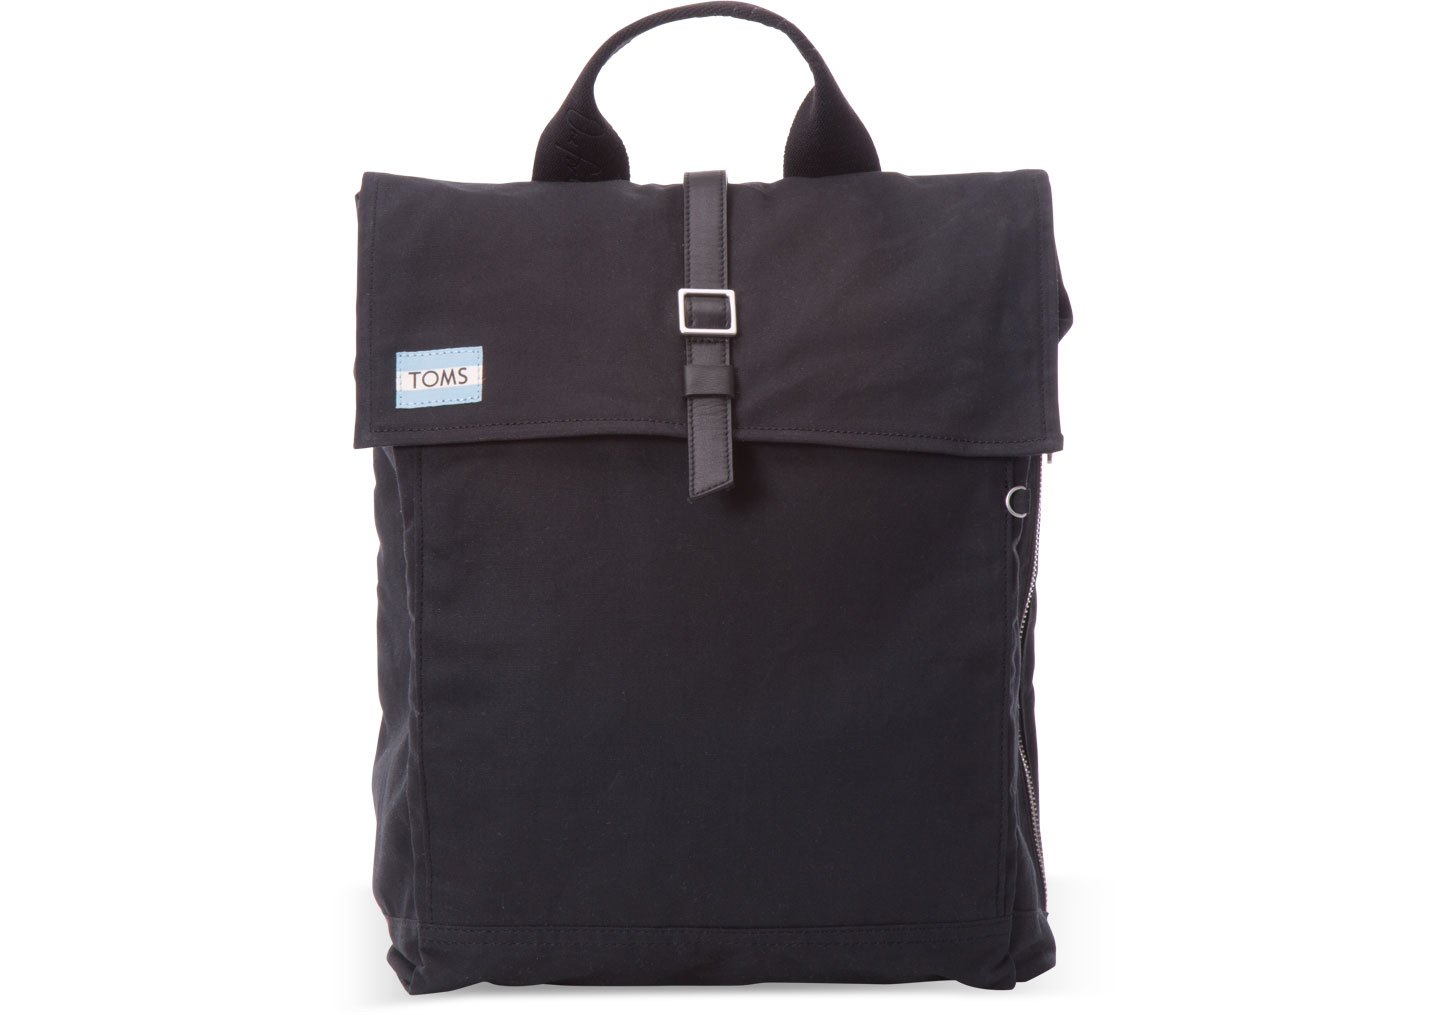 Style Roundup: 10 Best Backpacks for Men | Style Girlfriend